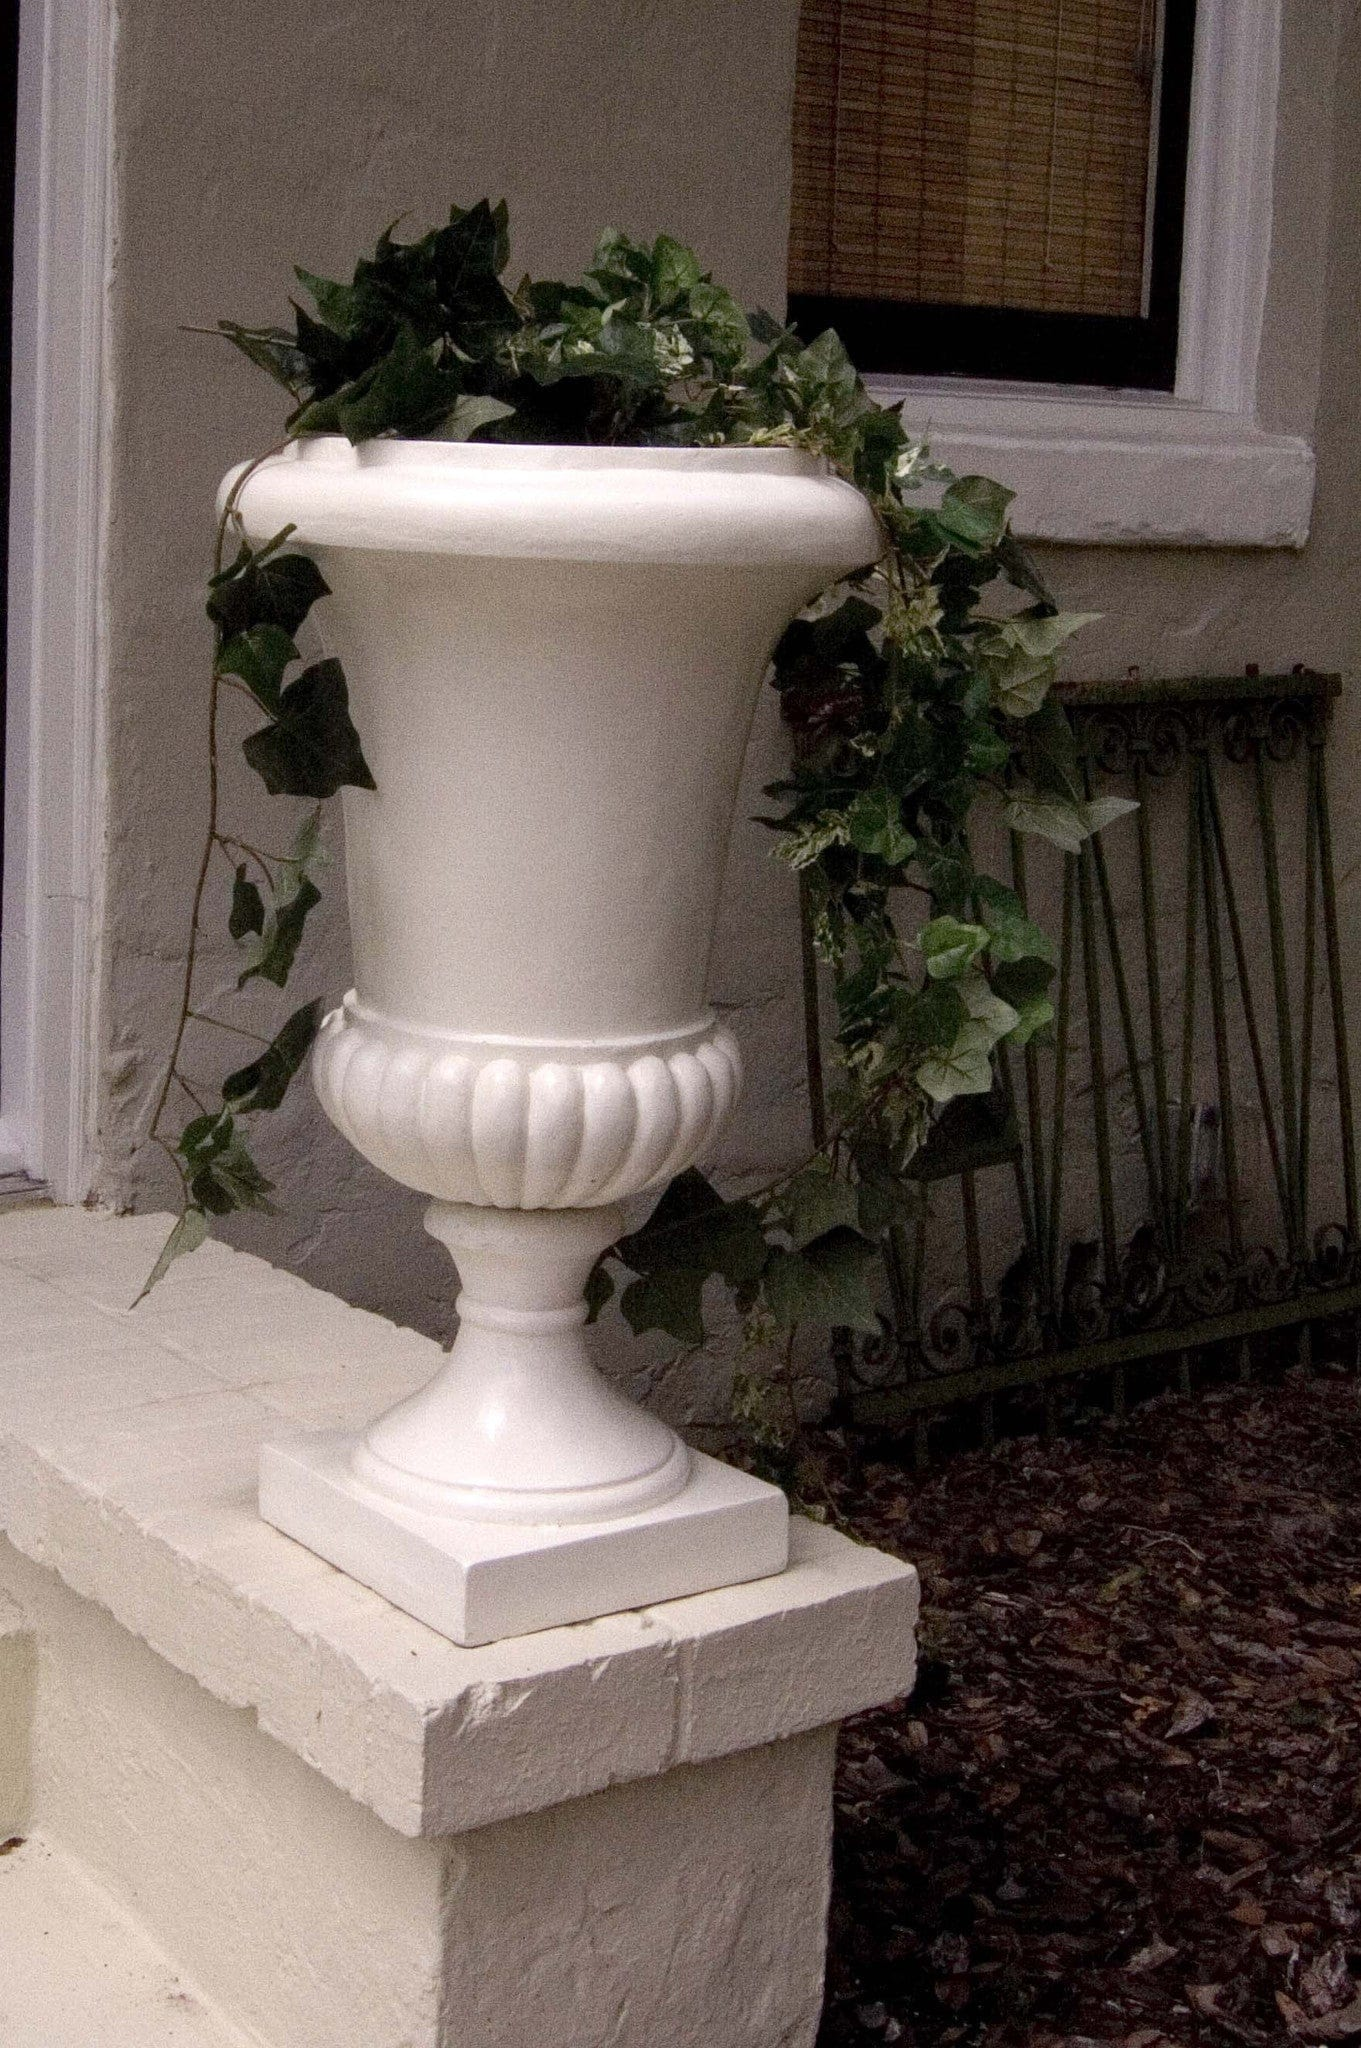 red hill detail qcp quail round urns planters qr planter in urn